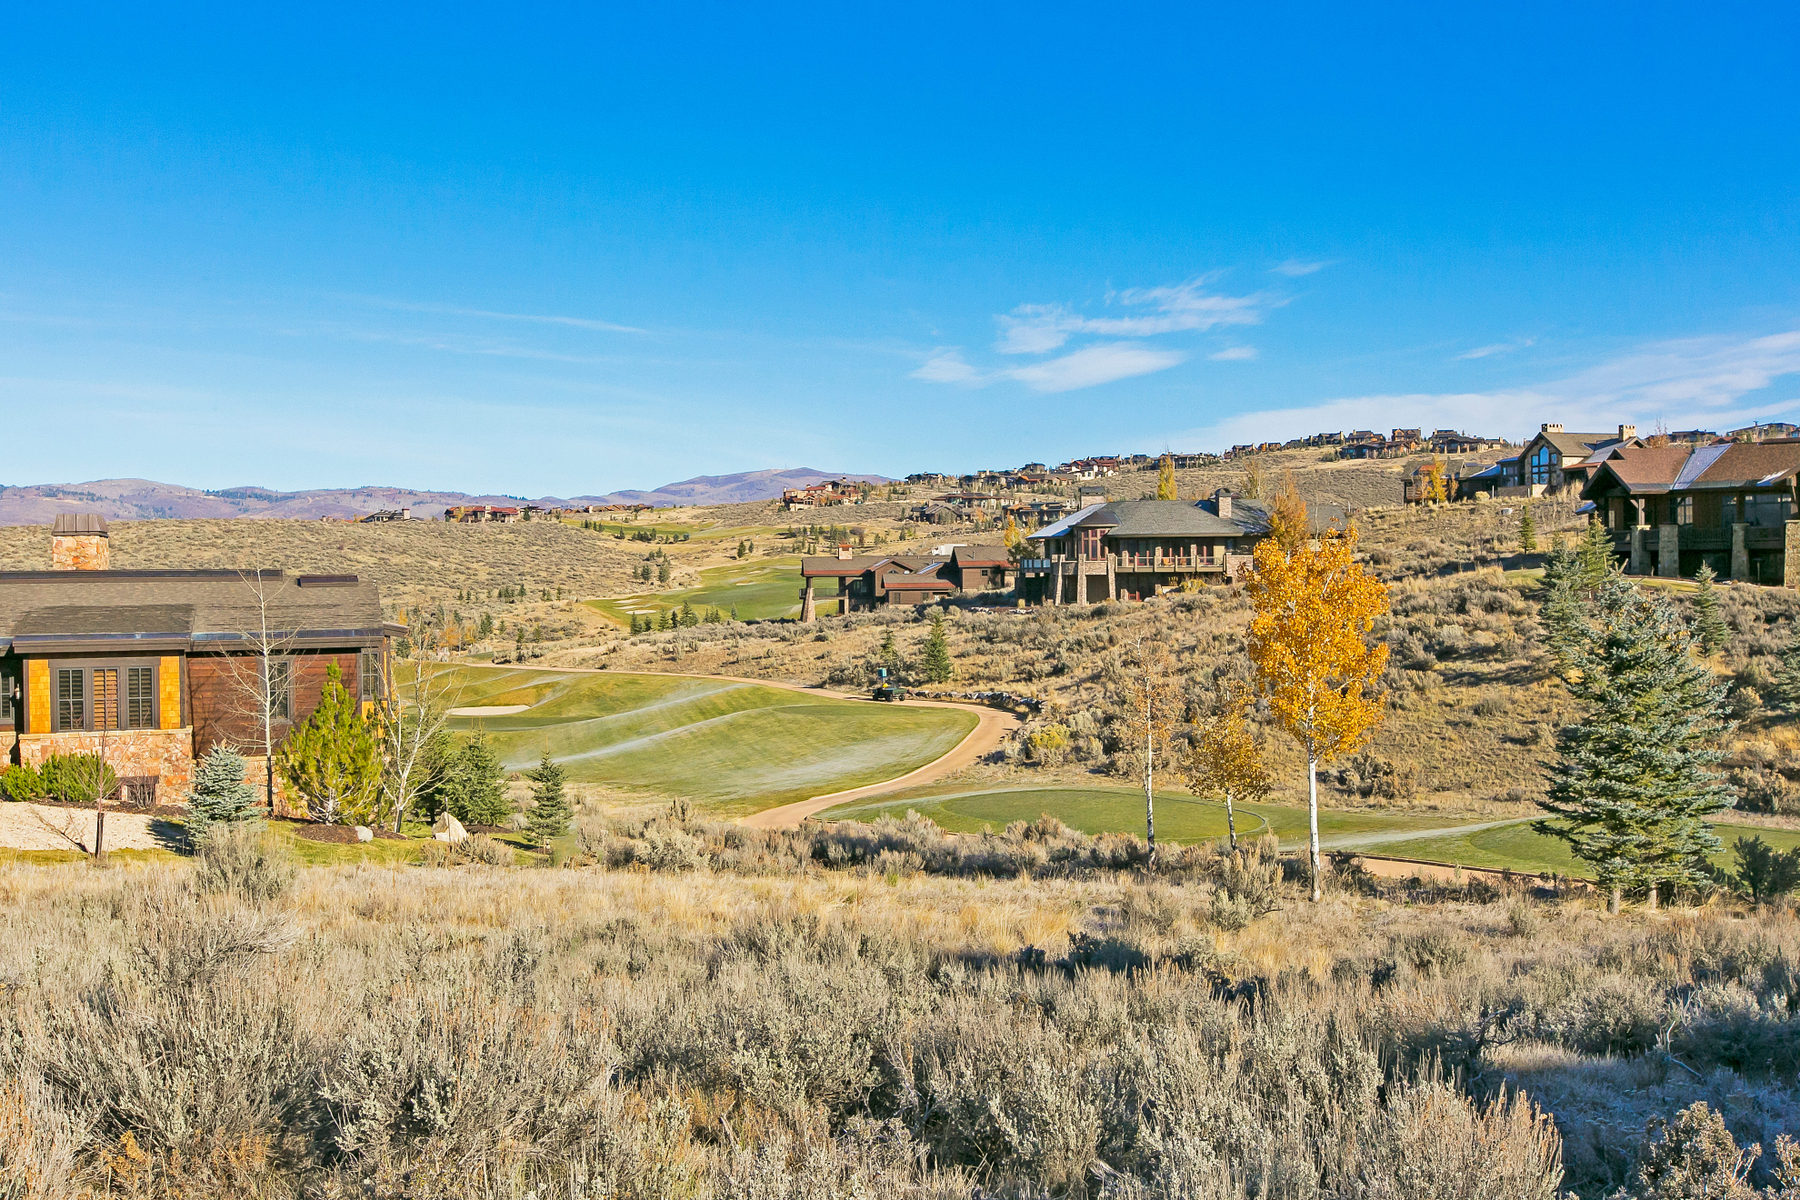 Land for Sale at Golf Course Lot with Green & Fairway Views 2783 E BITTERBRUSH DR Park City, Utah 84098 United States